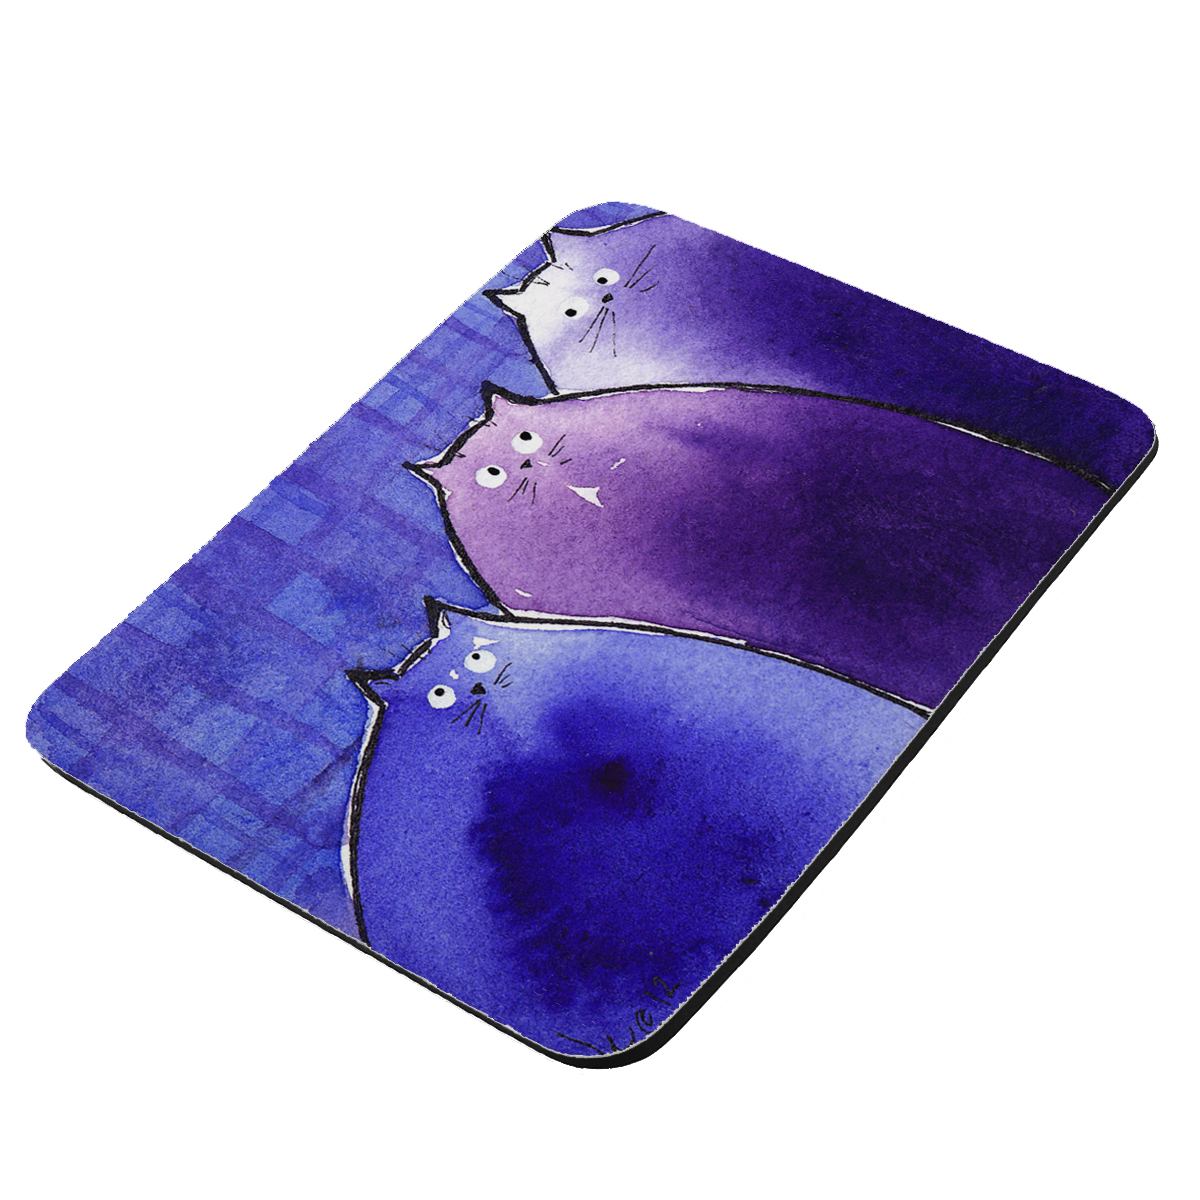 Blue and Purple Chunky Kitties Abstract Cat Art by Denise Every - KuzmarK Mousepad / Hot Pad / Trivet